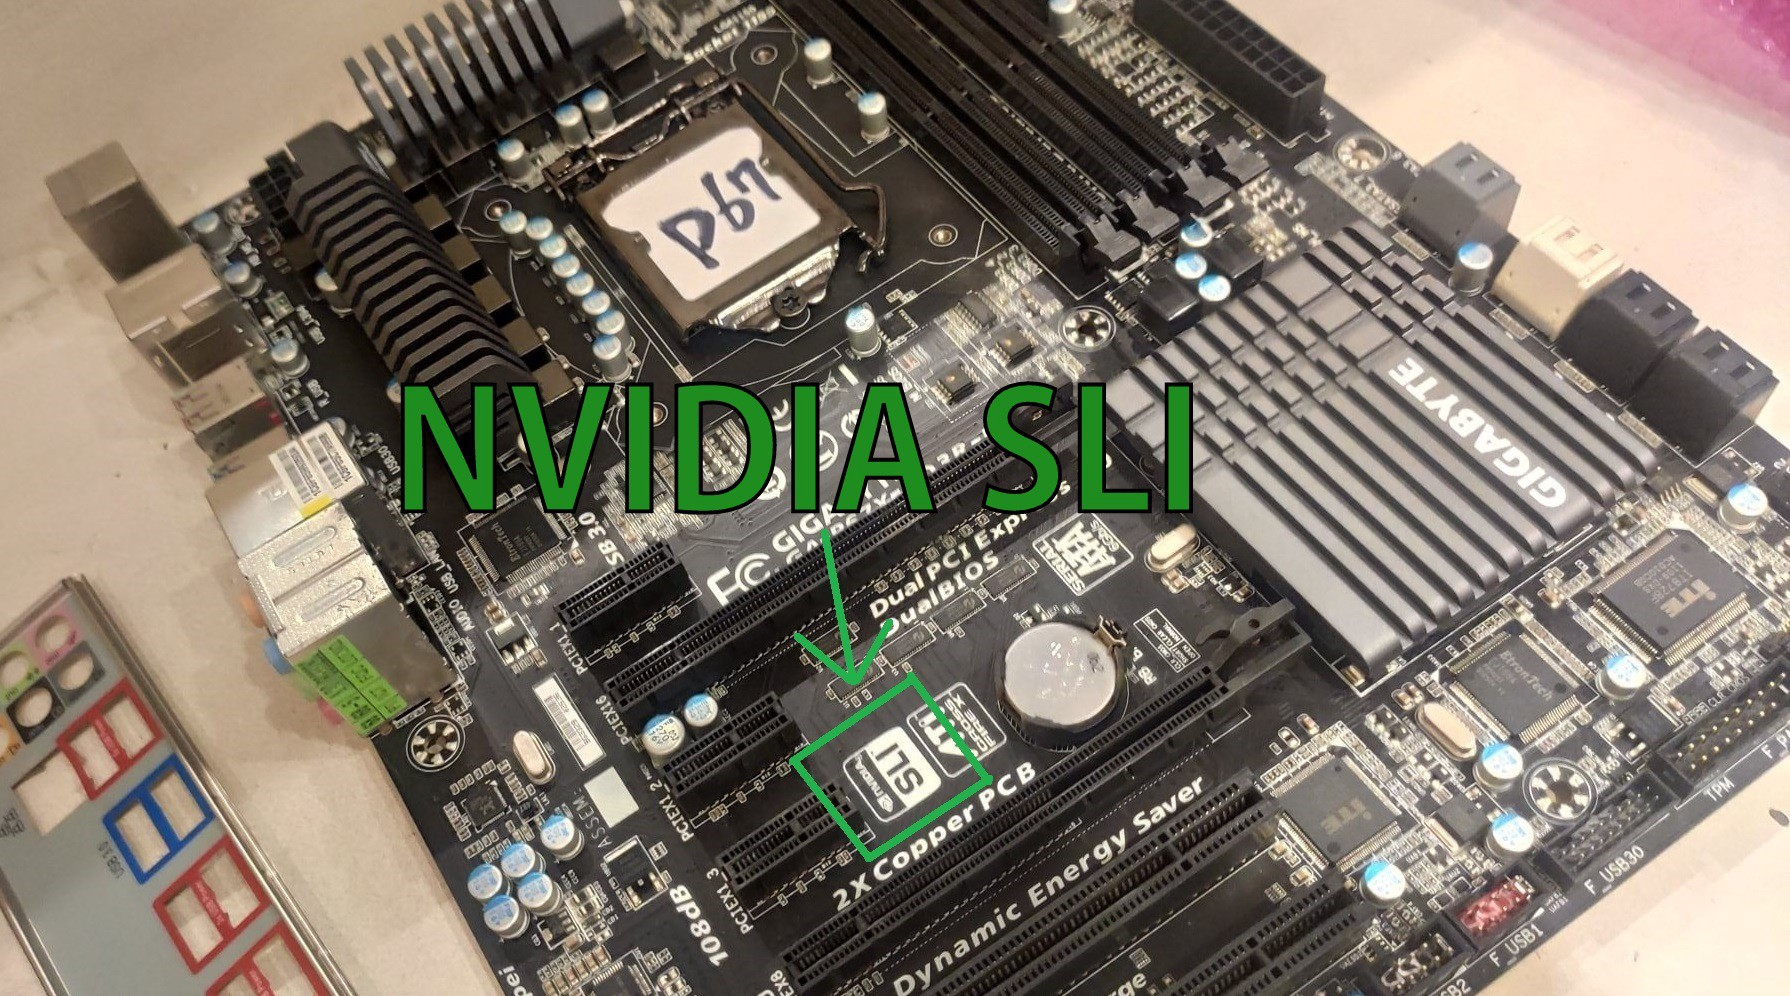 Amd Crossfire Vs Nvidia Sli What S The Difference By Gayan Rockey Medium